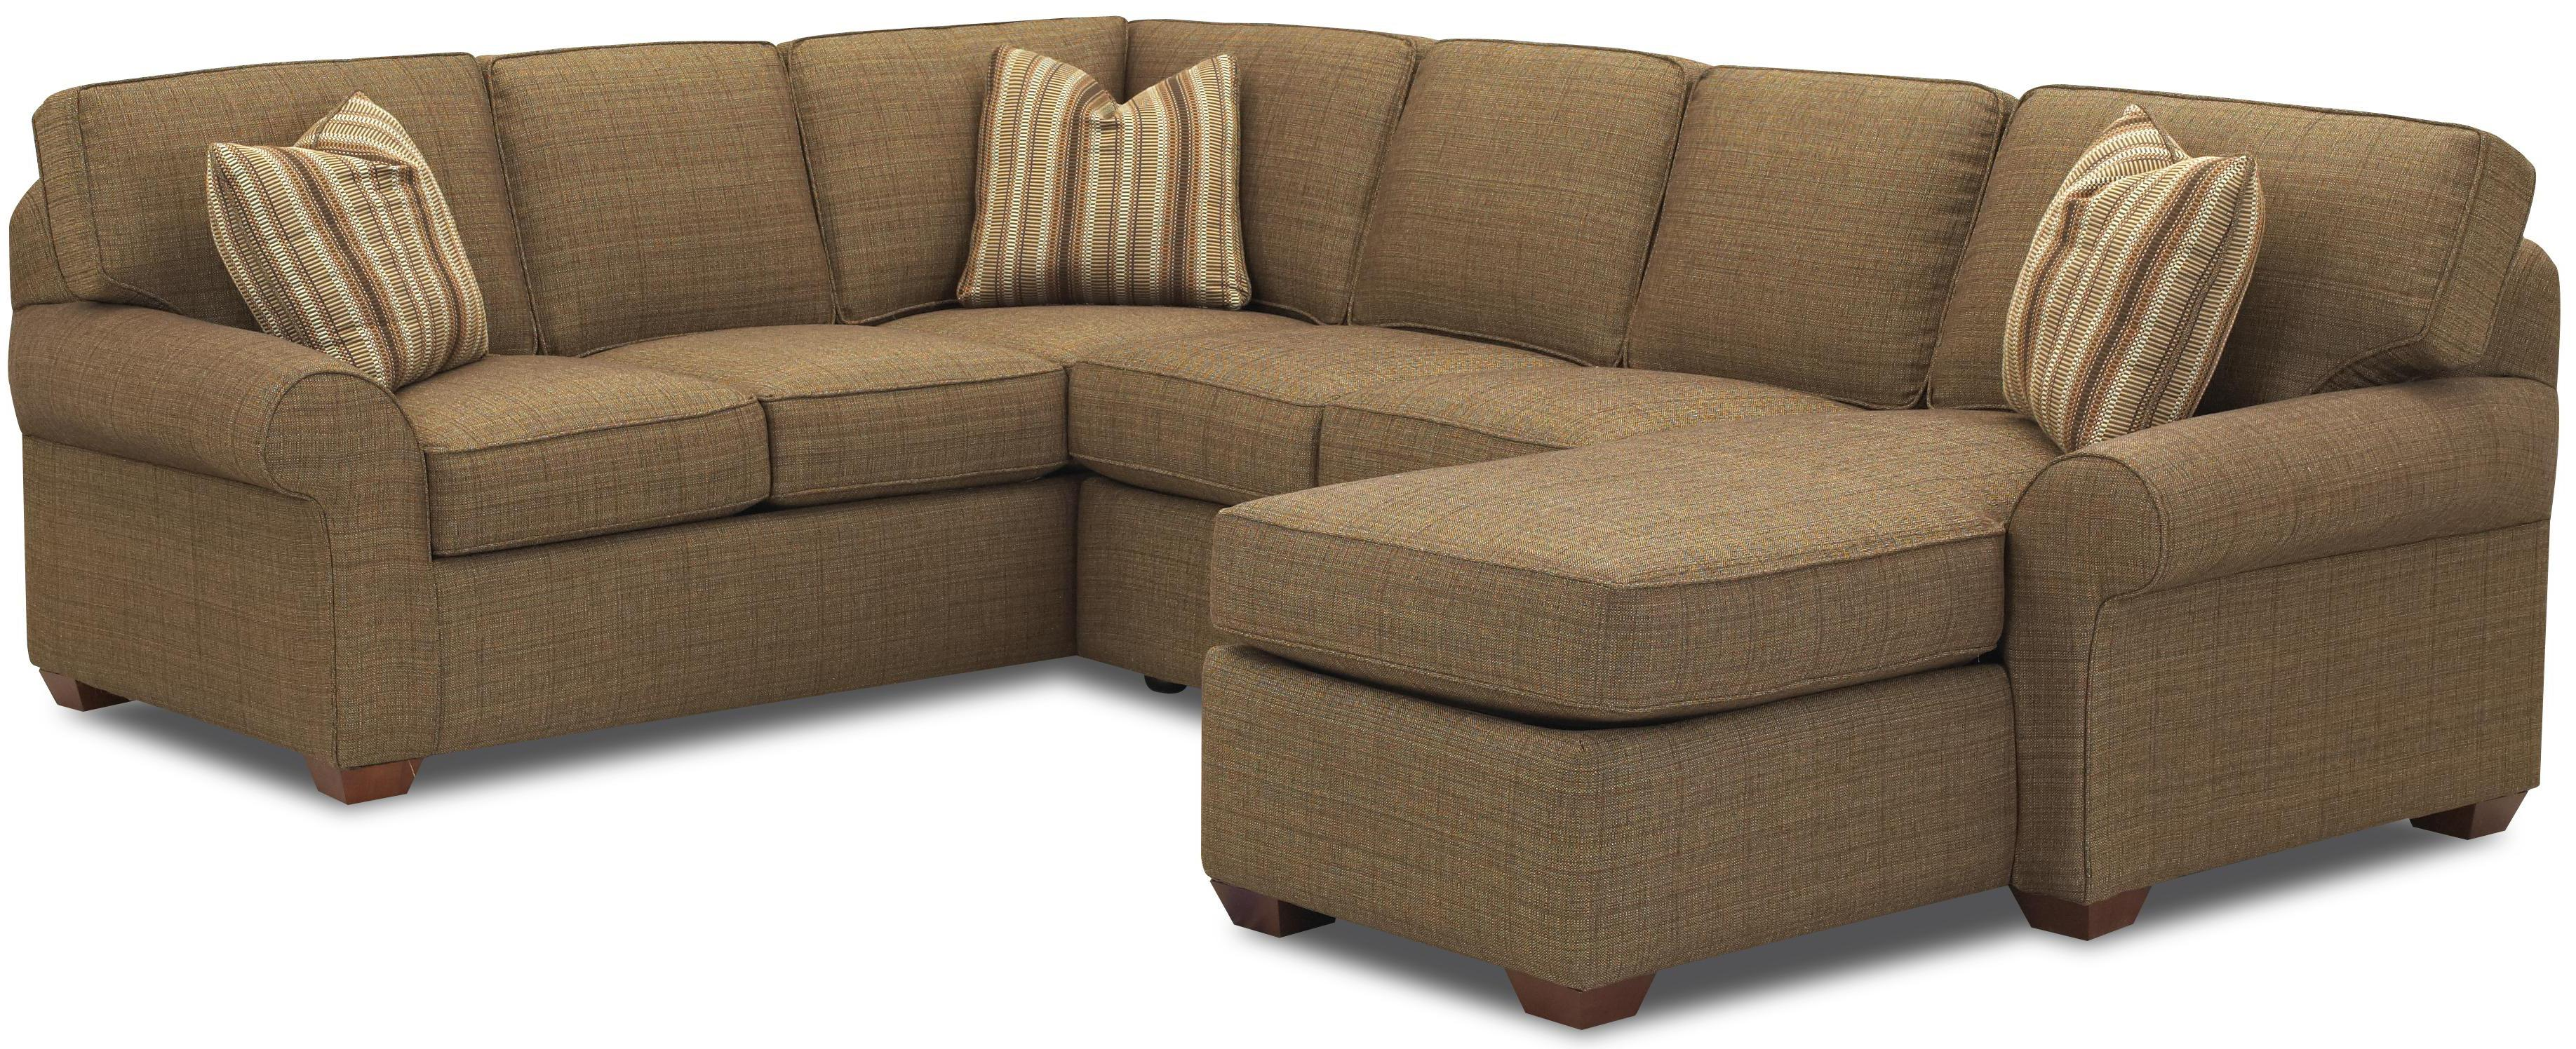 Sectional Sofa Group with Right Chaise Lounge